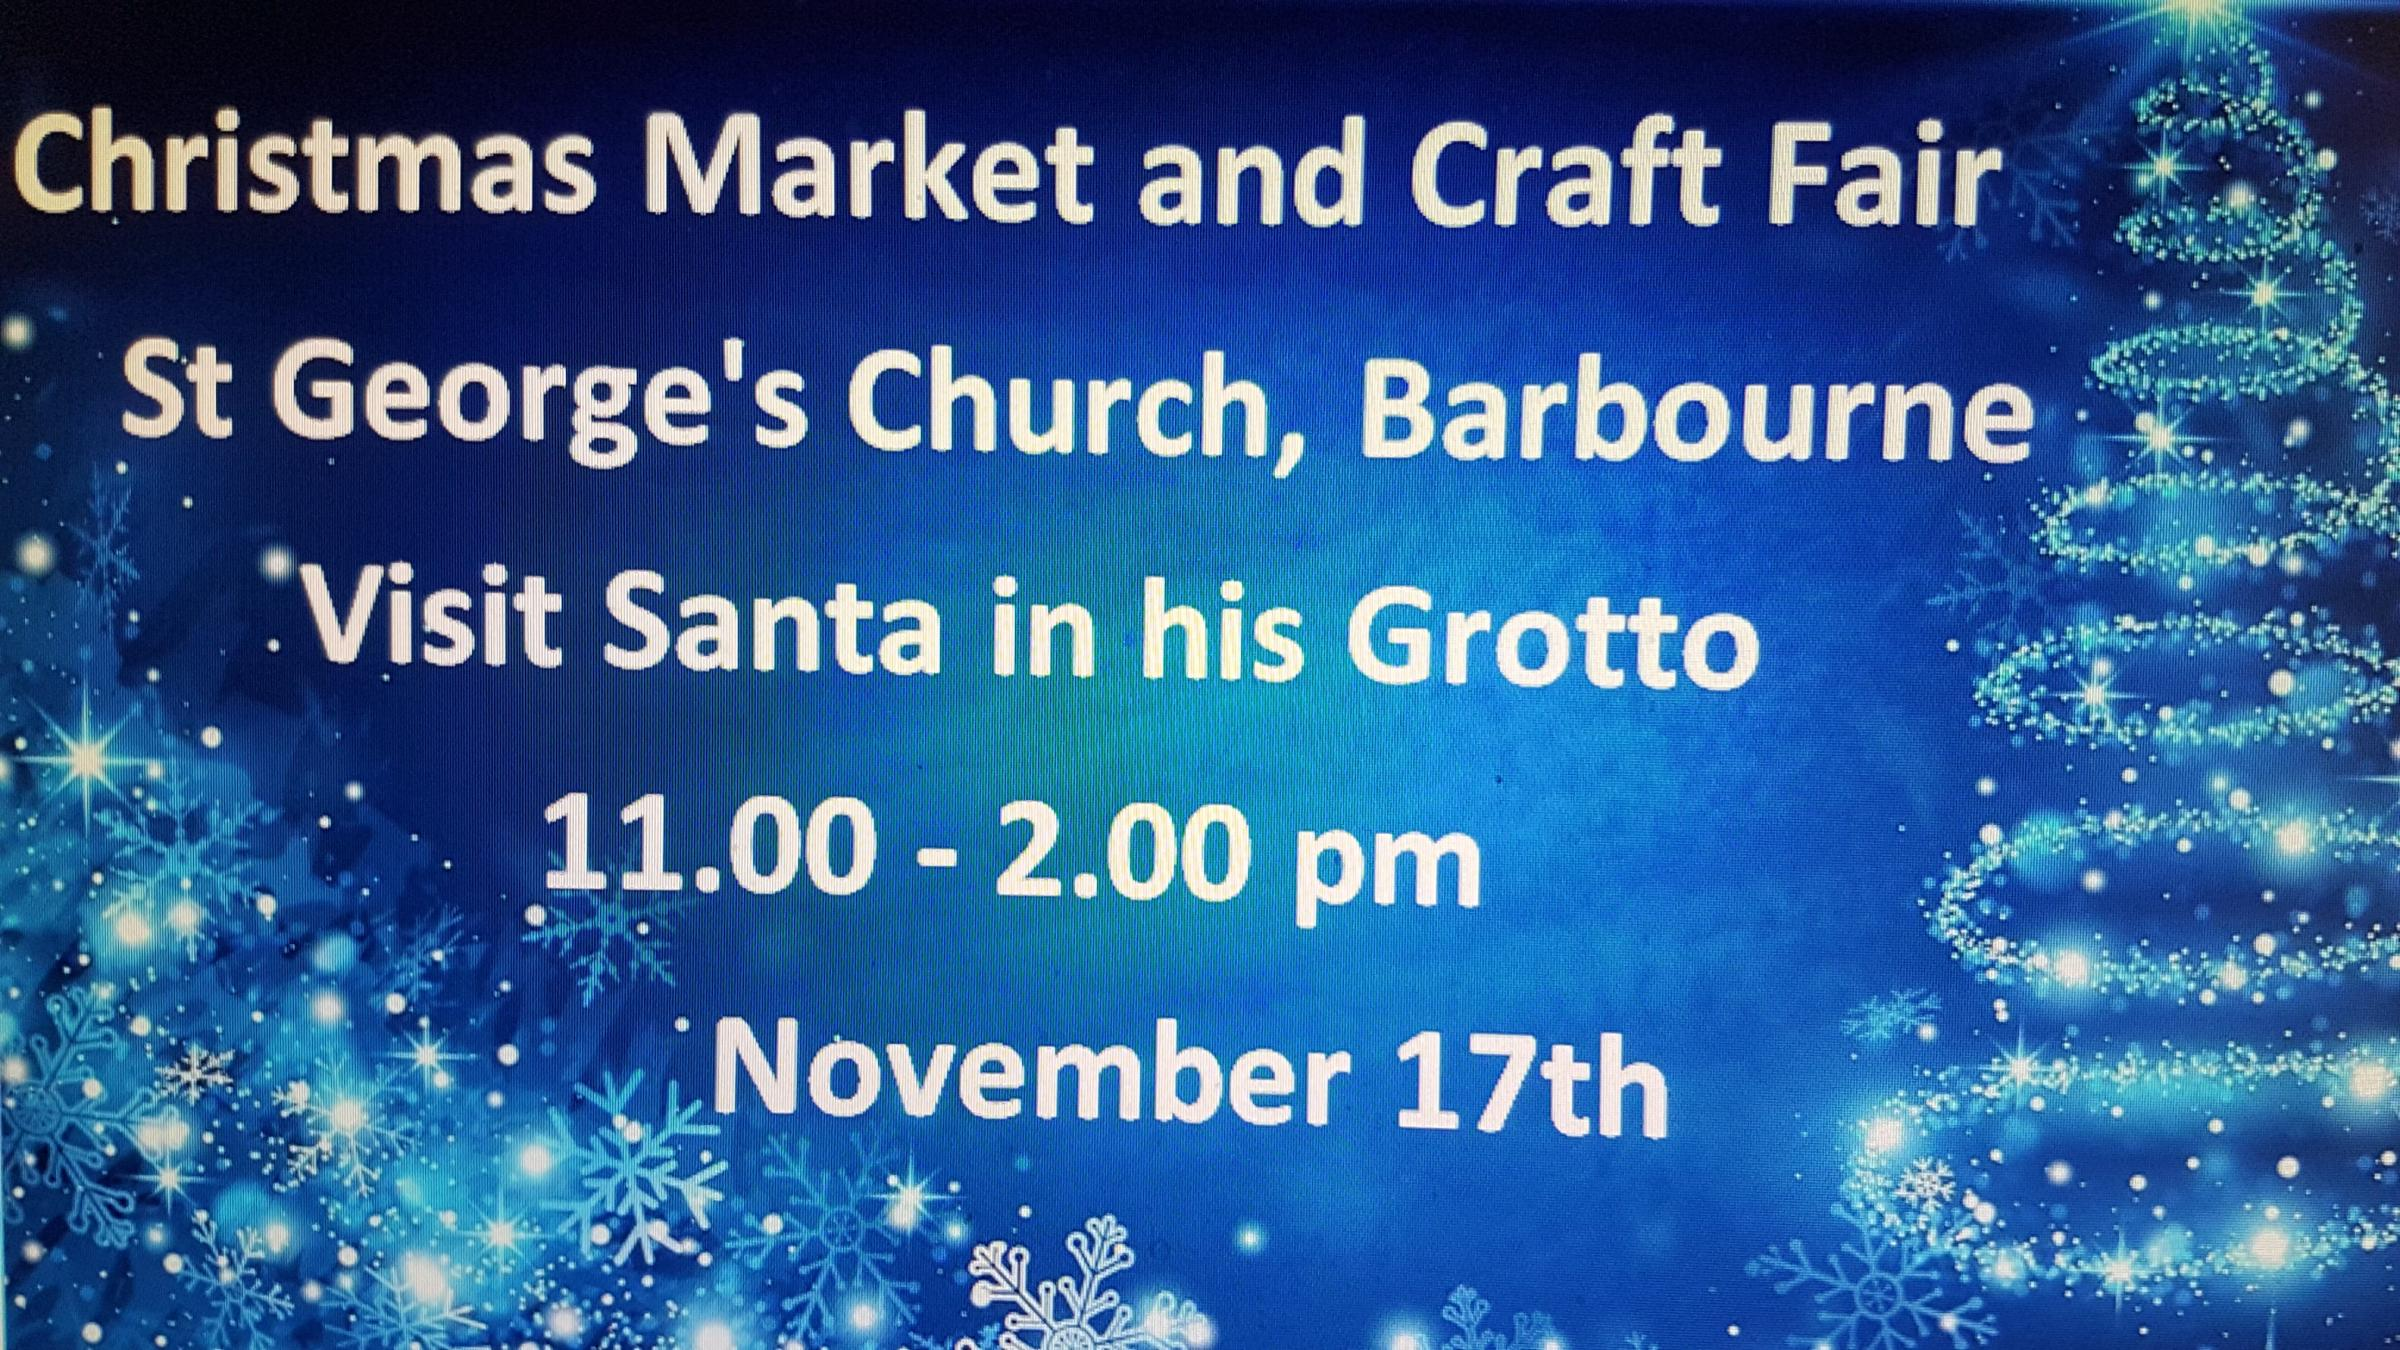 Christmas Market and Craft Fair